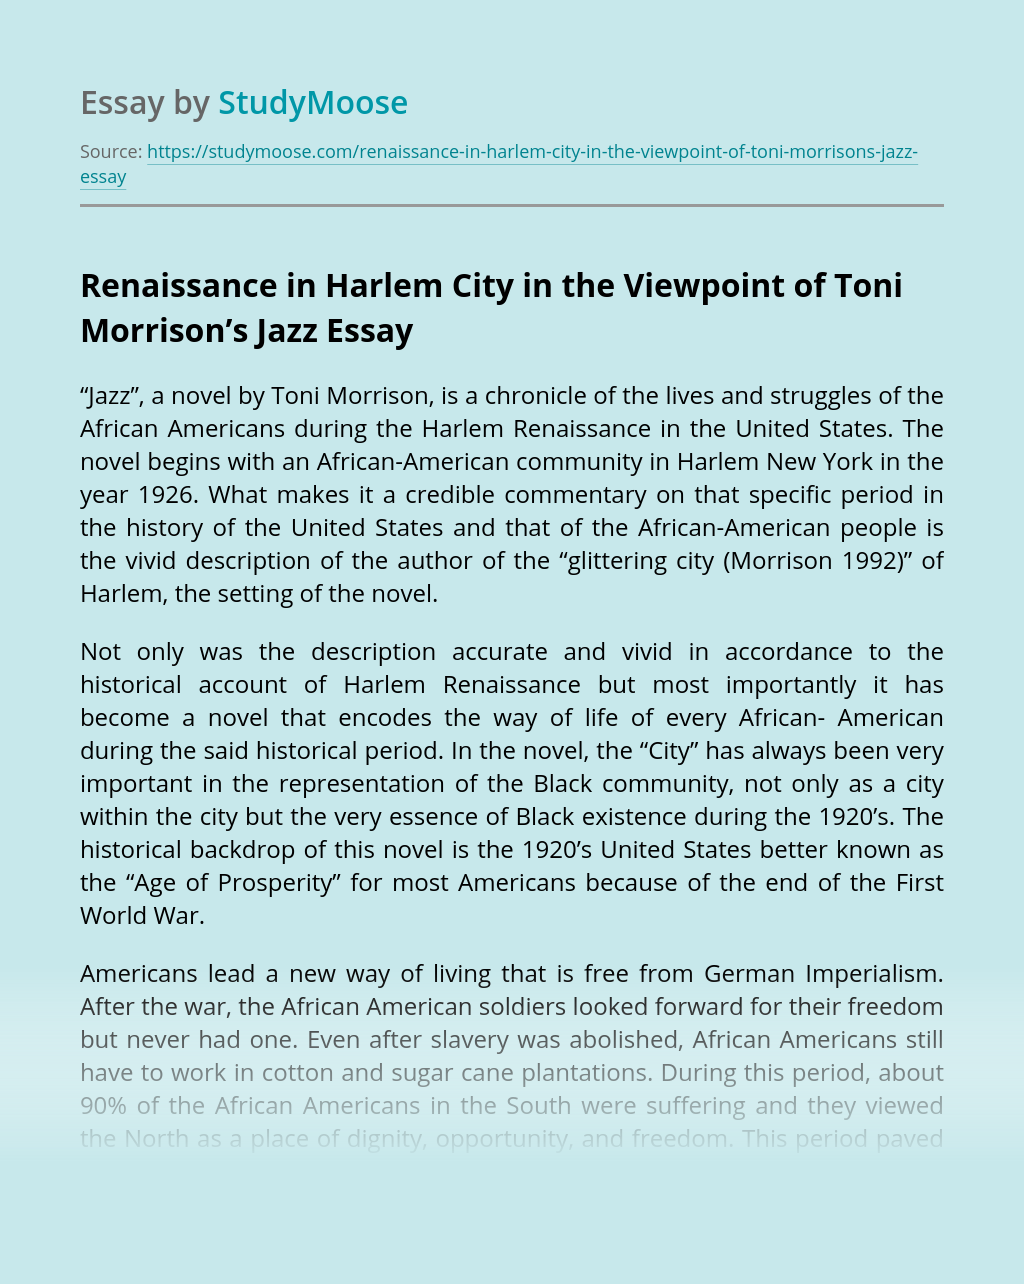 Renaissance in Harlem City in the Viewpoint of Toni Morrison's Jazz